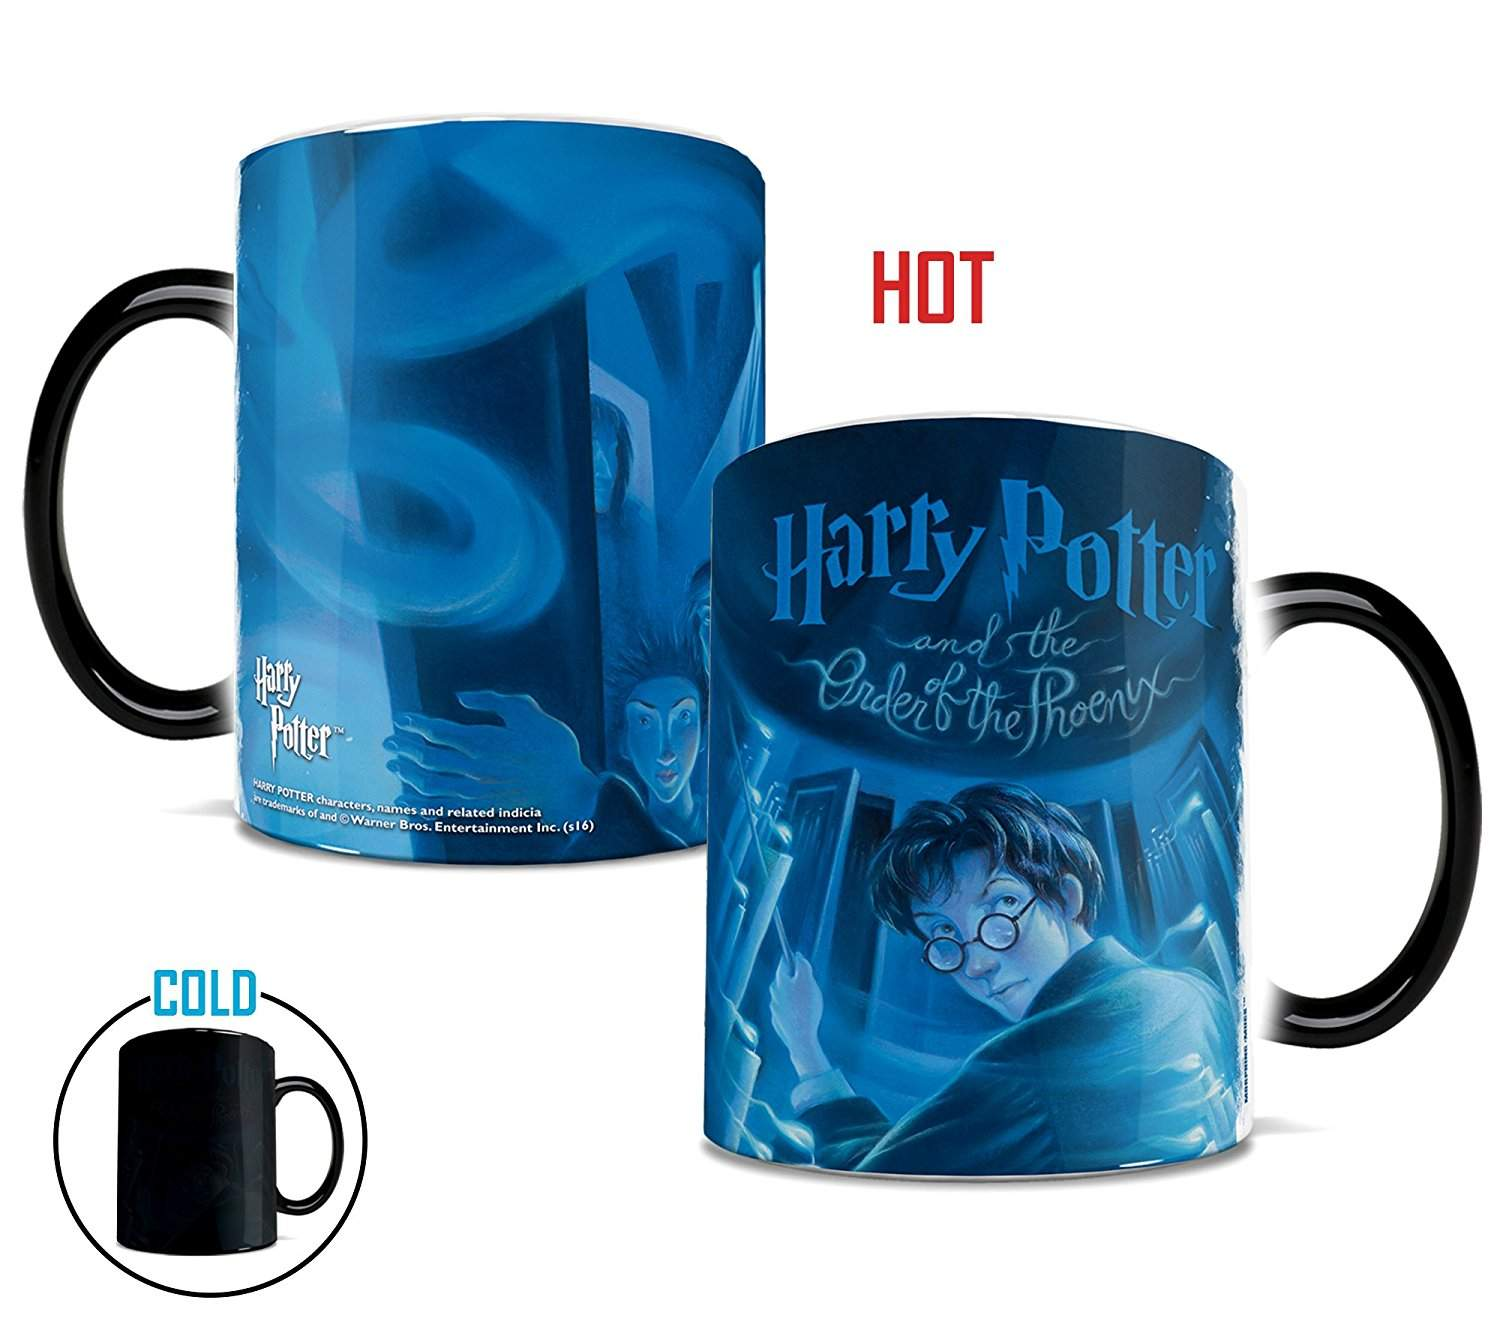 Penguin Book Cover Coffee Mugs : Harry potter and the order of phoenix book cover heat